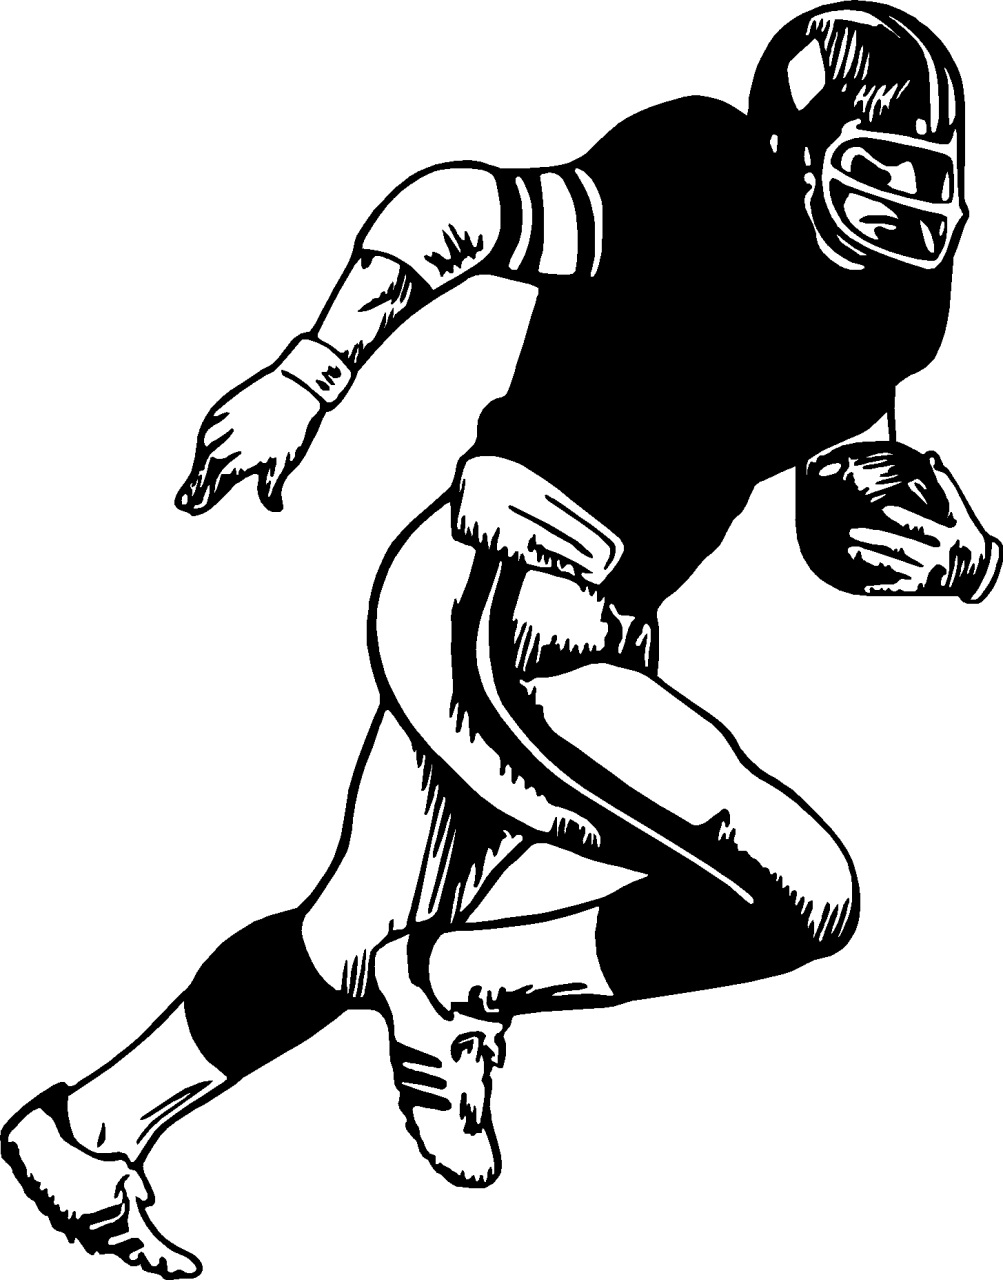 a drawing of a football player football player drawings clipartsco of a a football player drawing